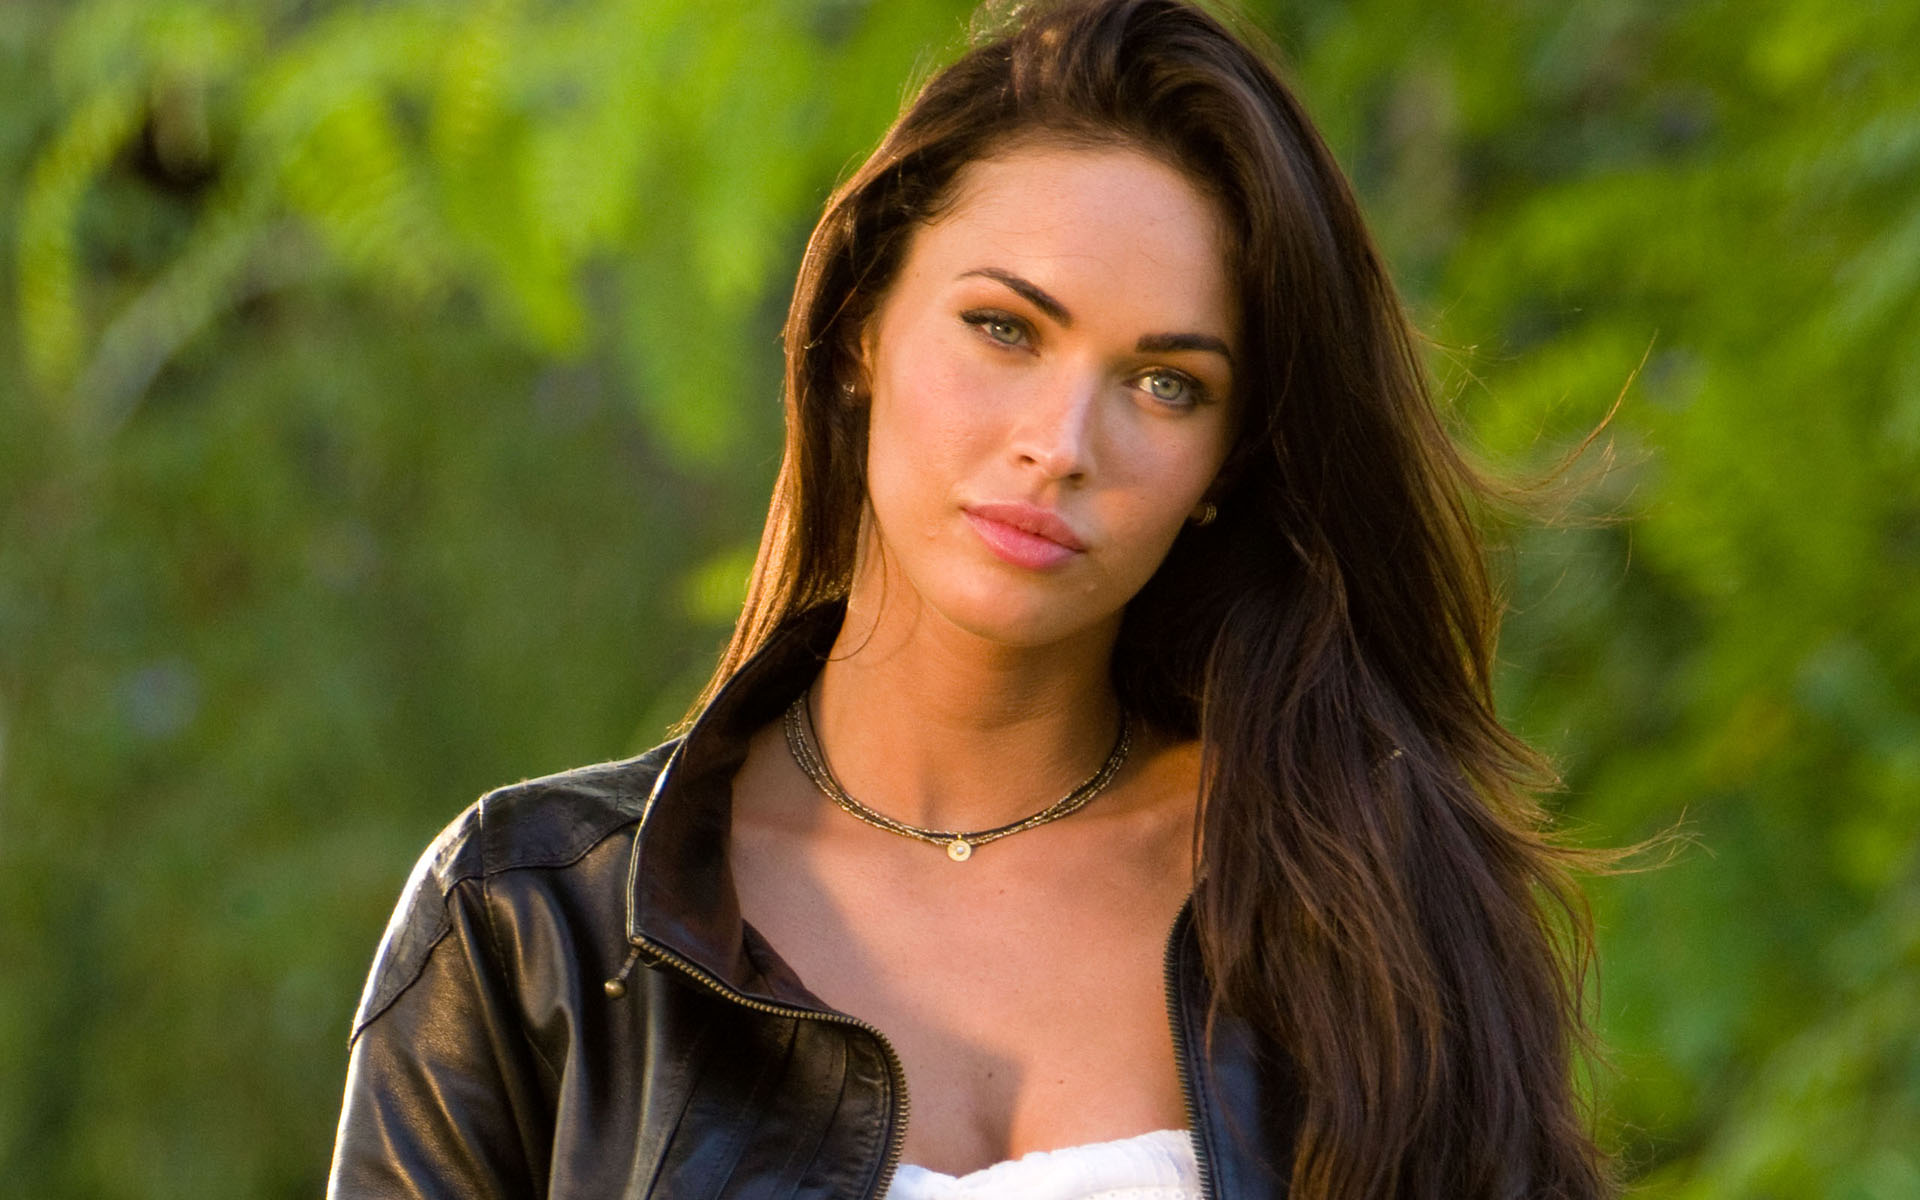 Megan fox iphone wallpaper download.